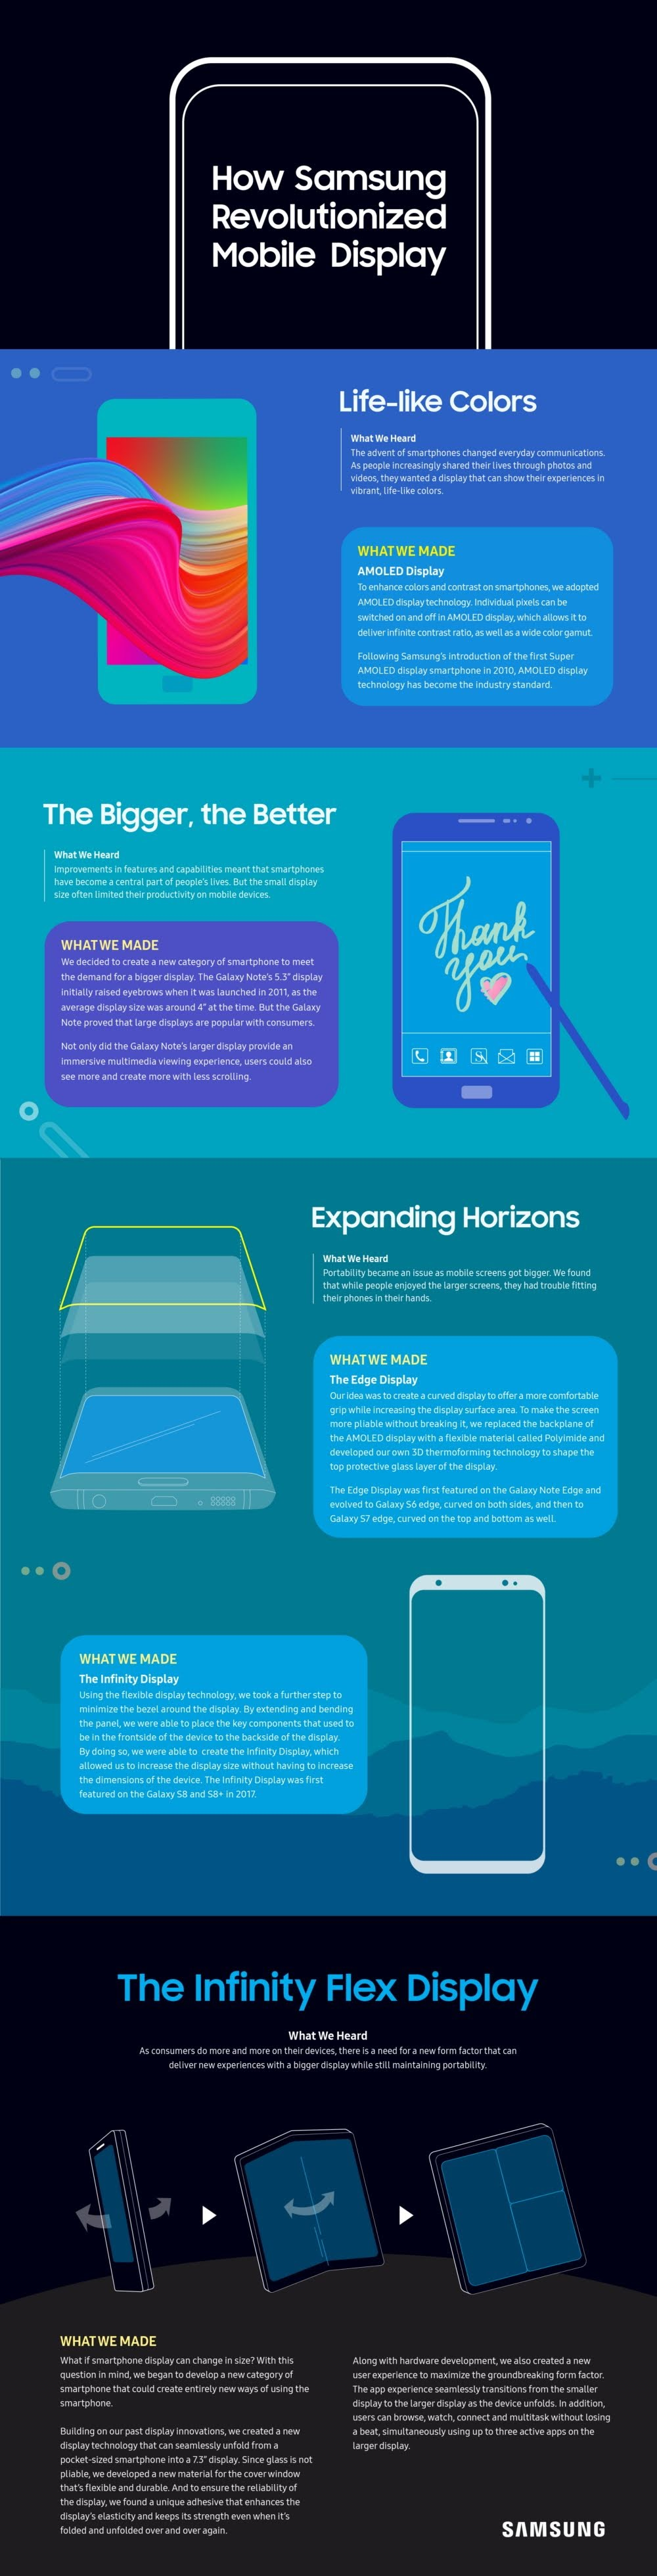 Samsung Revolutionized Mobile Display #infographic